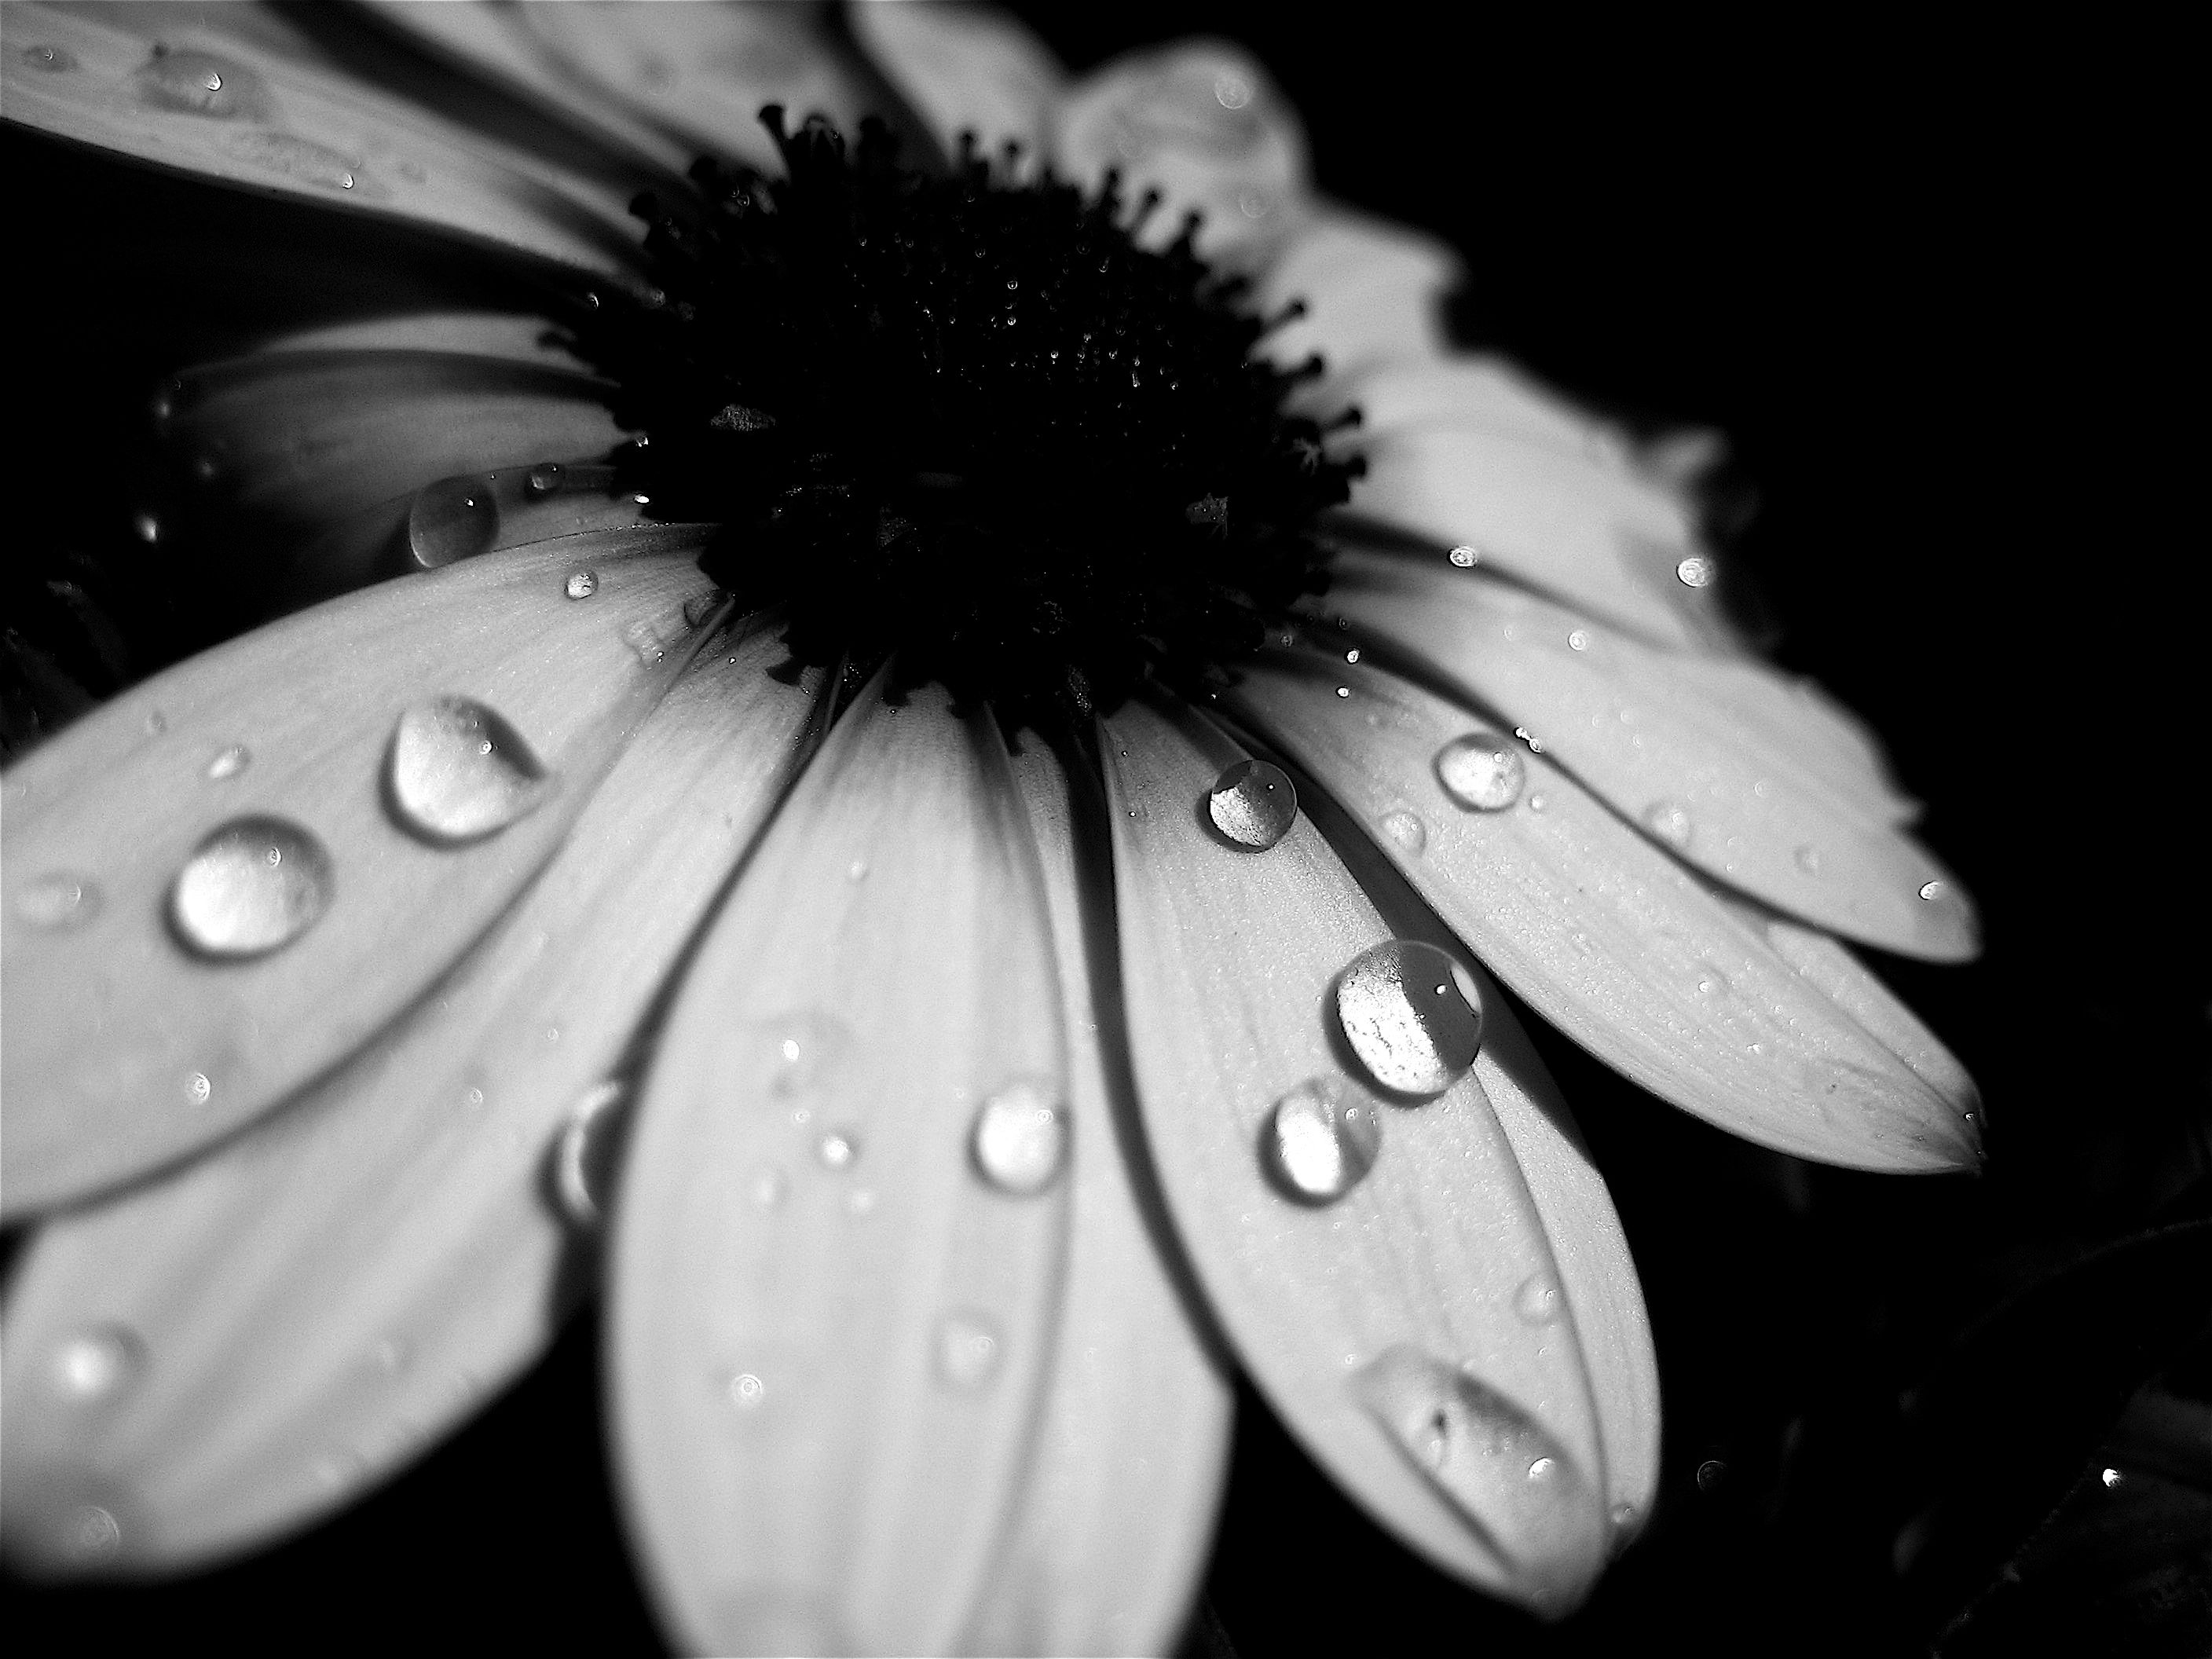 Http Orig08 Deviantart Net F0f0 F 2008 040 C 9 Water Droplets By Cheiso Jpg Black And White Flowers Black And White Black And White Photographs